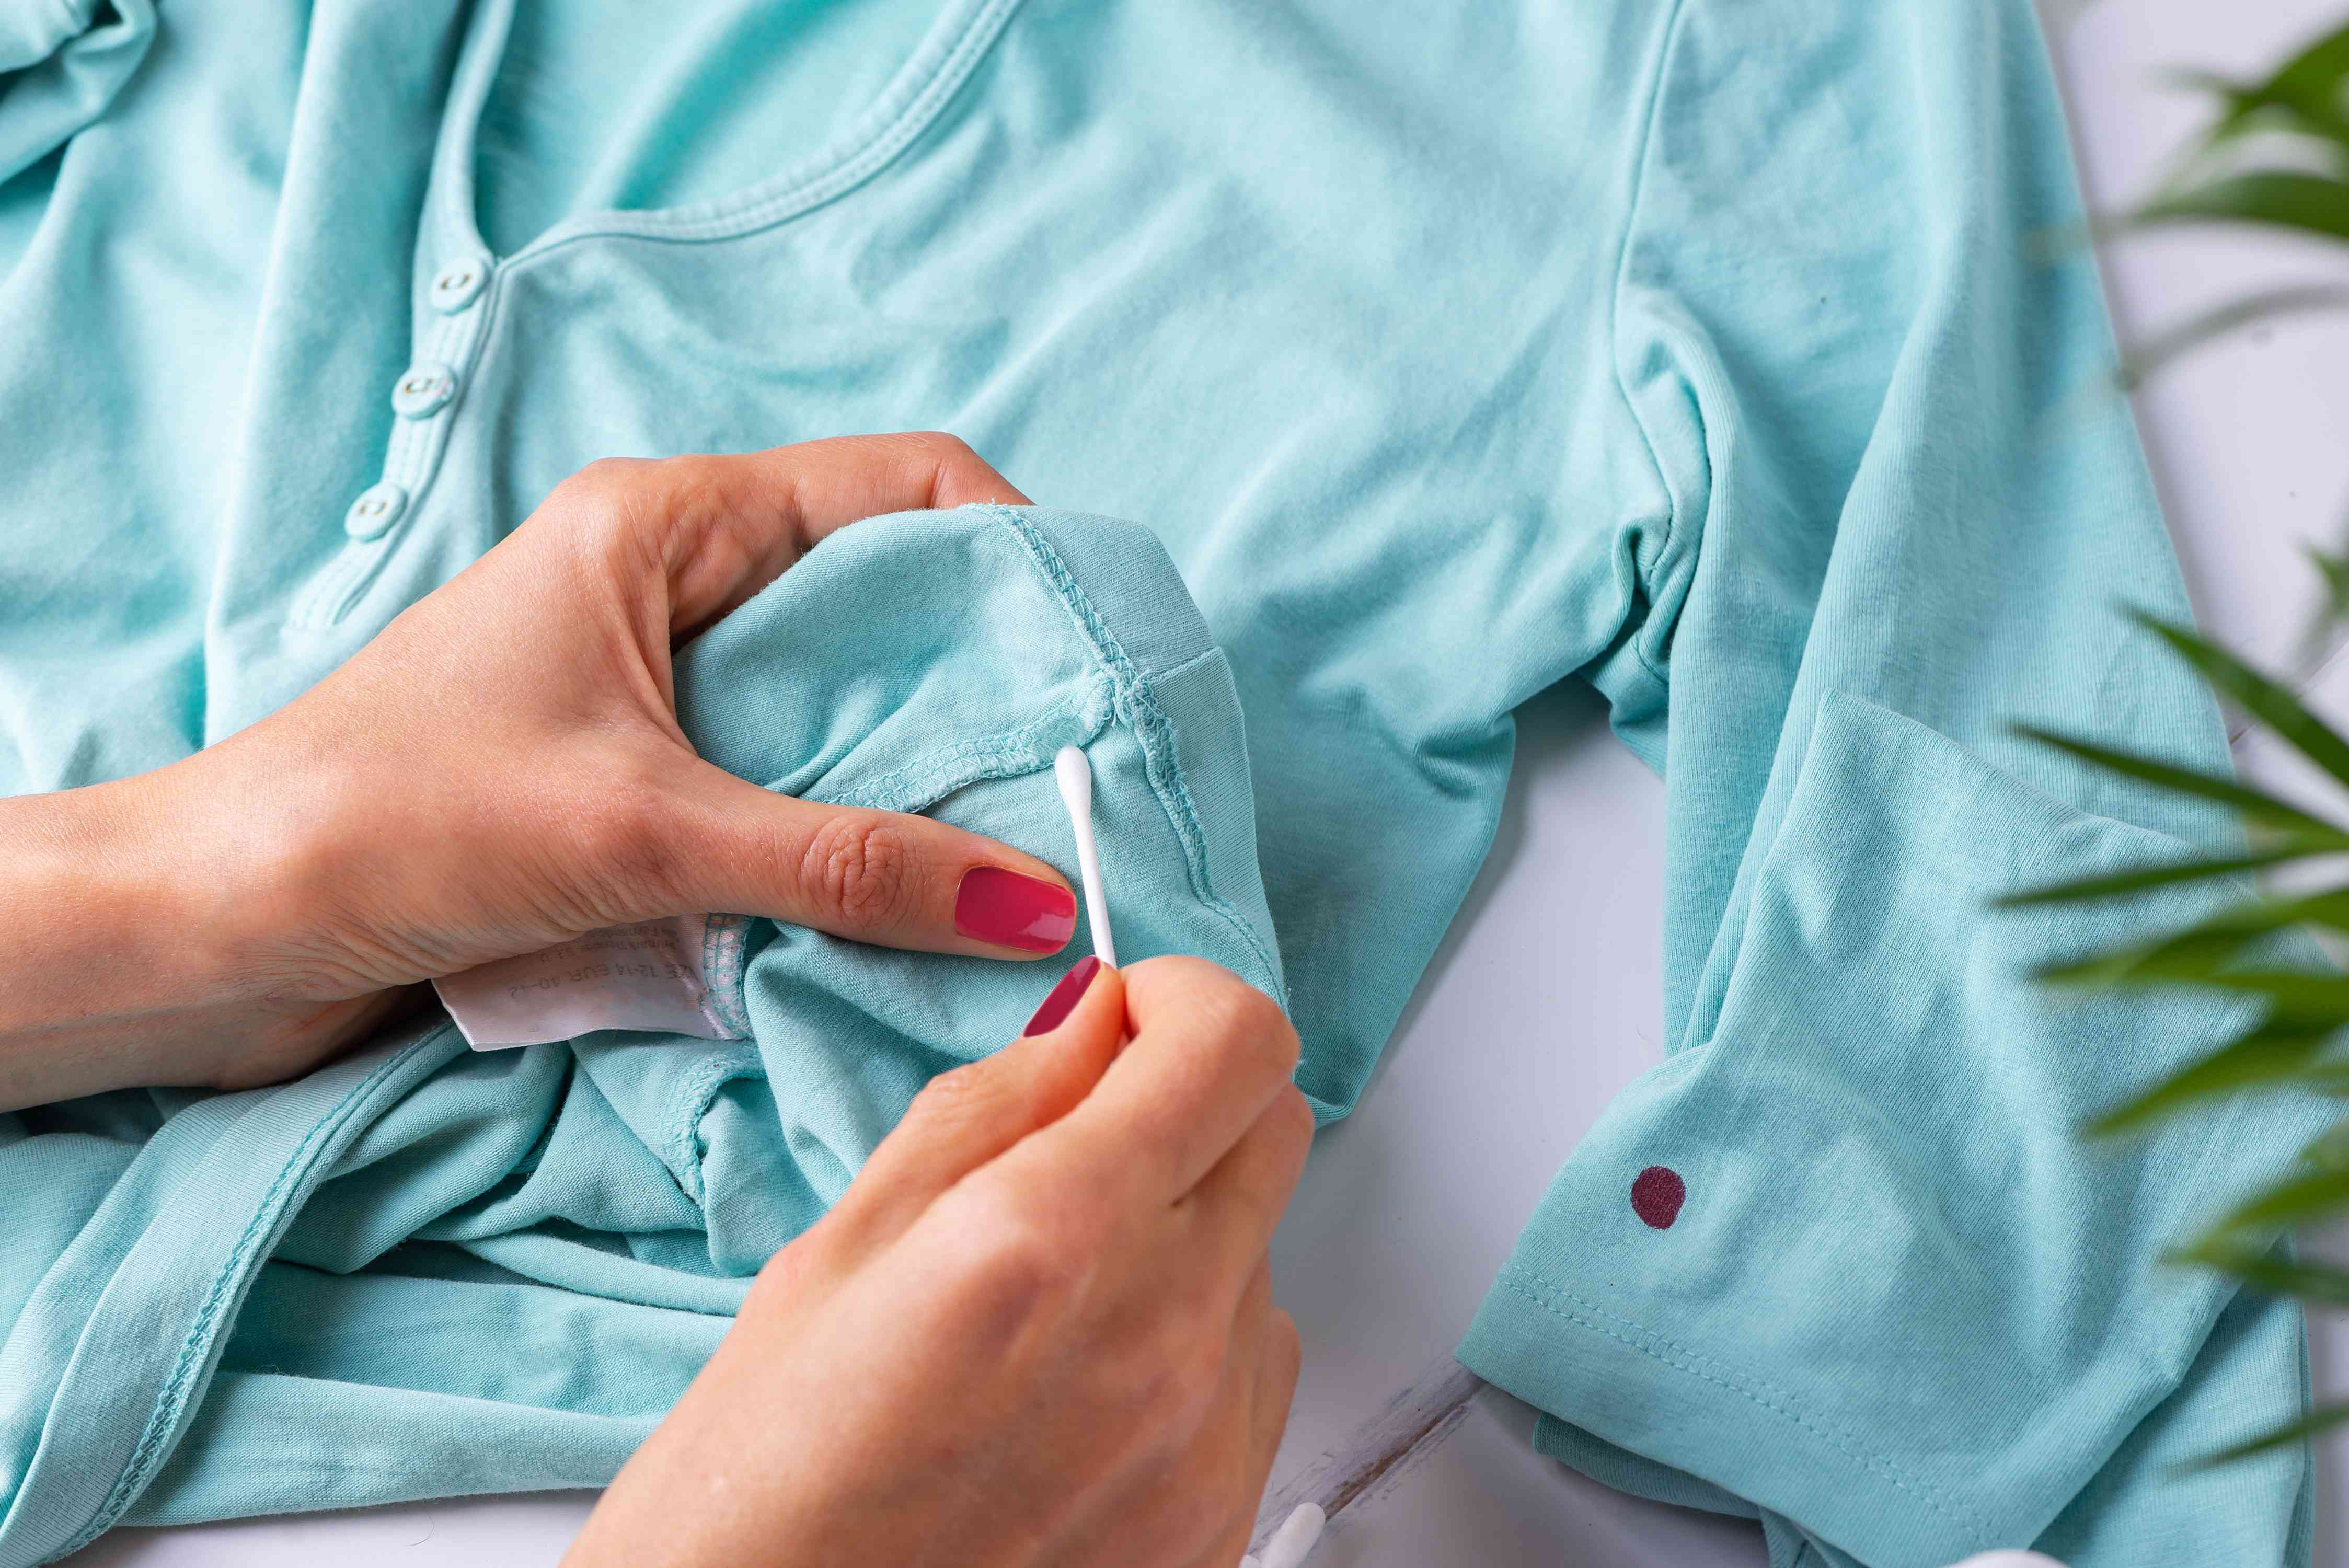 testing nail polish remover on a hidden area of the garment